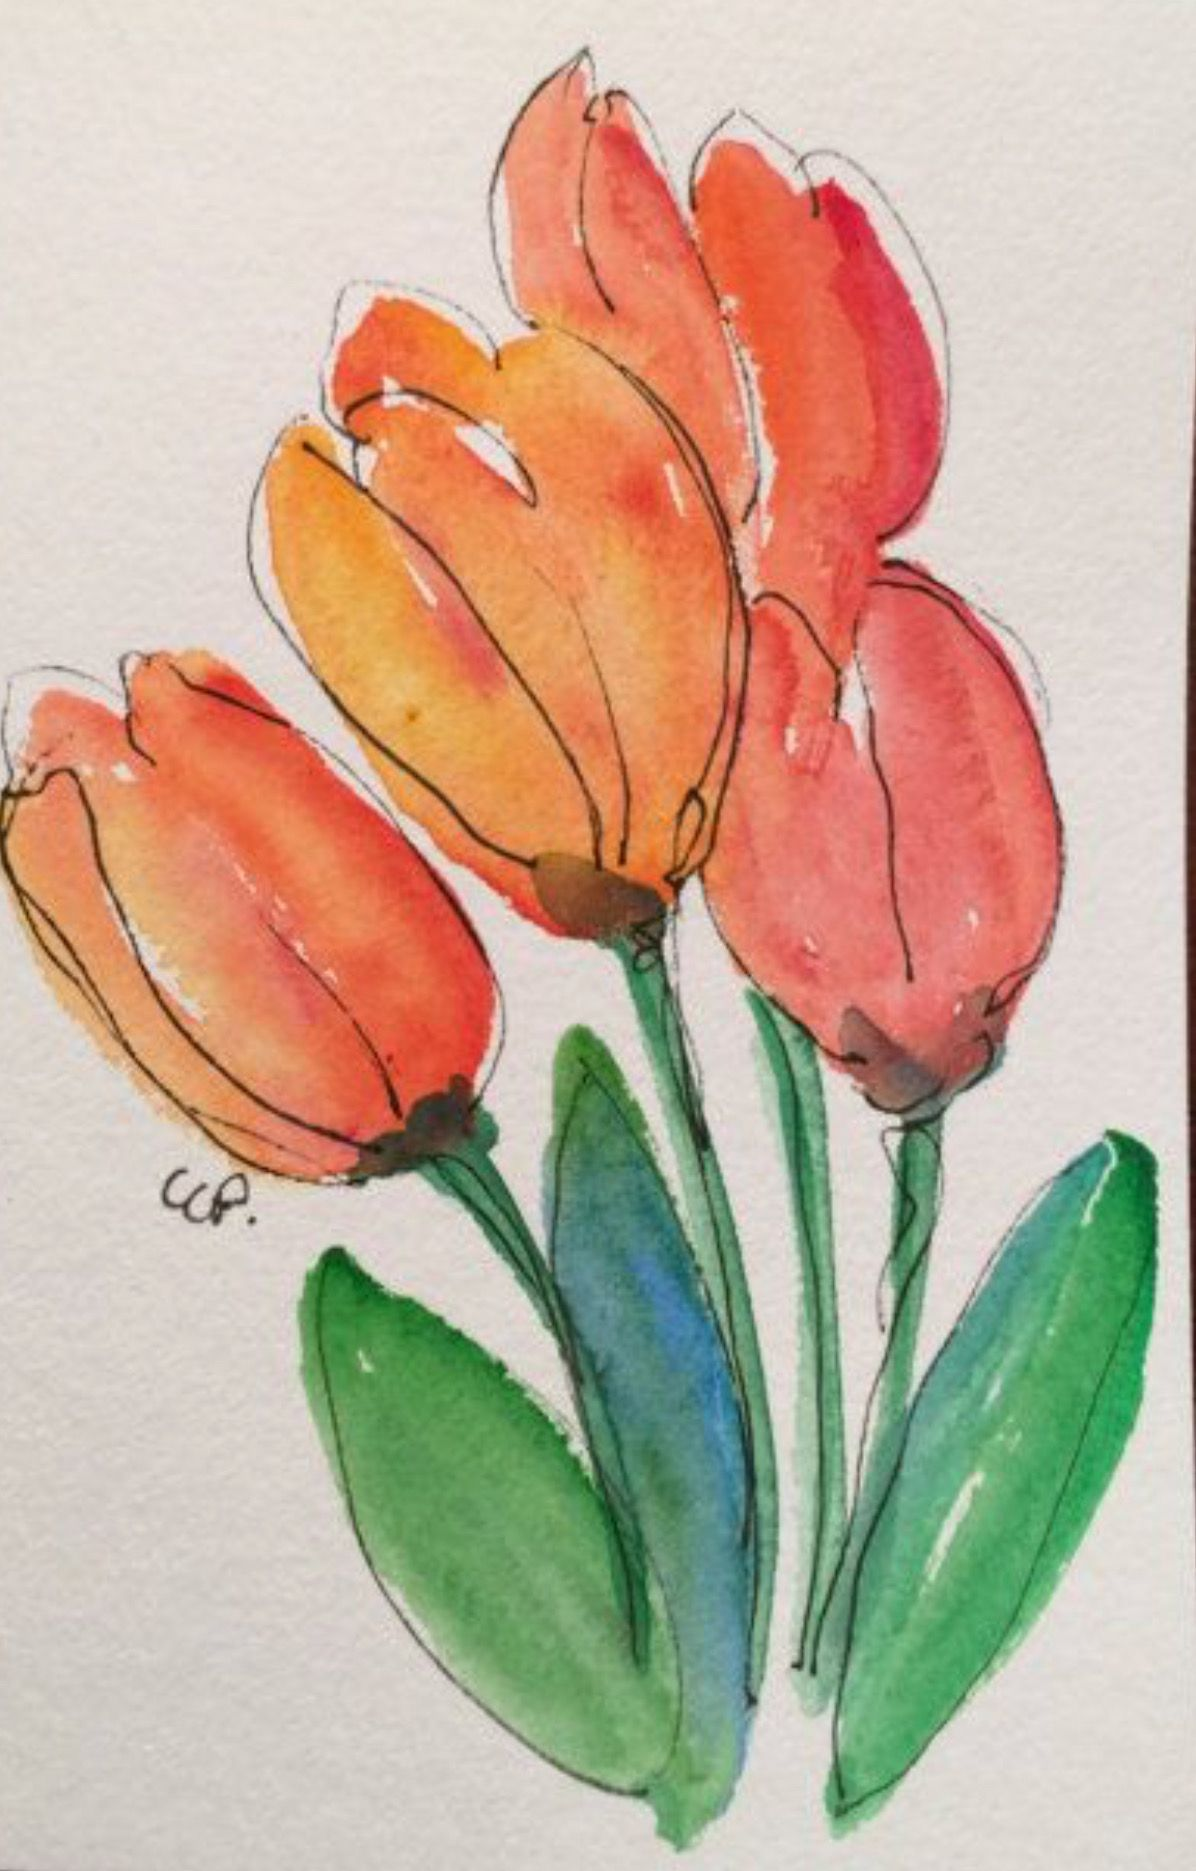 Watercolor Tulips Watercolor Tulips Watercolor Tulips